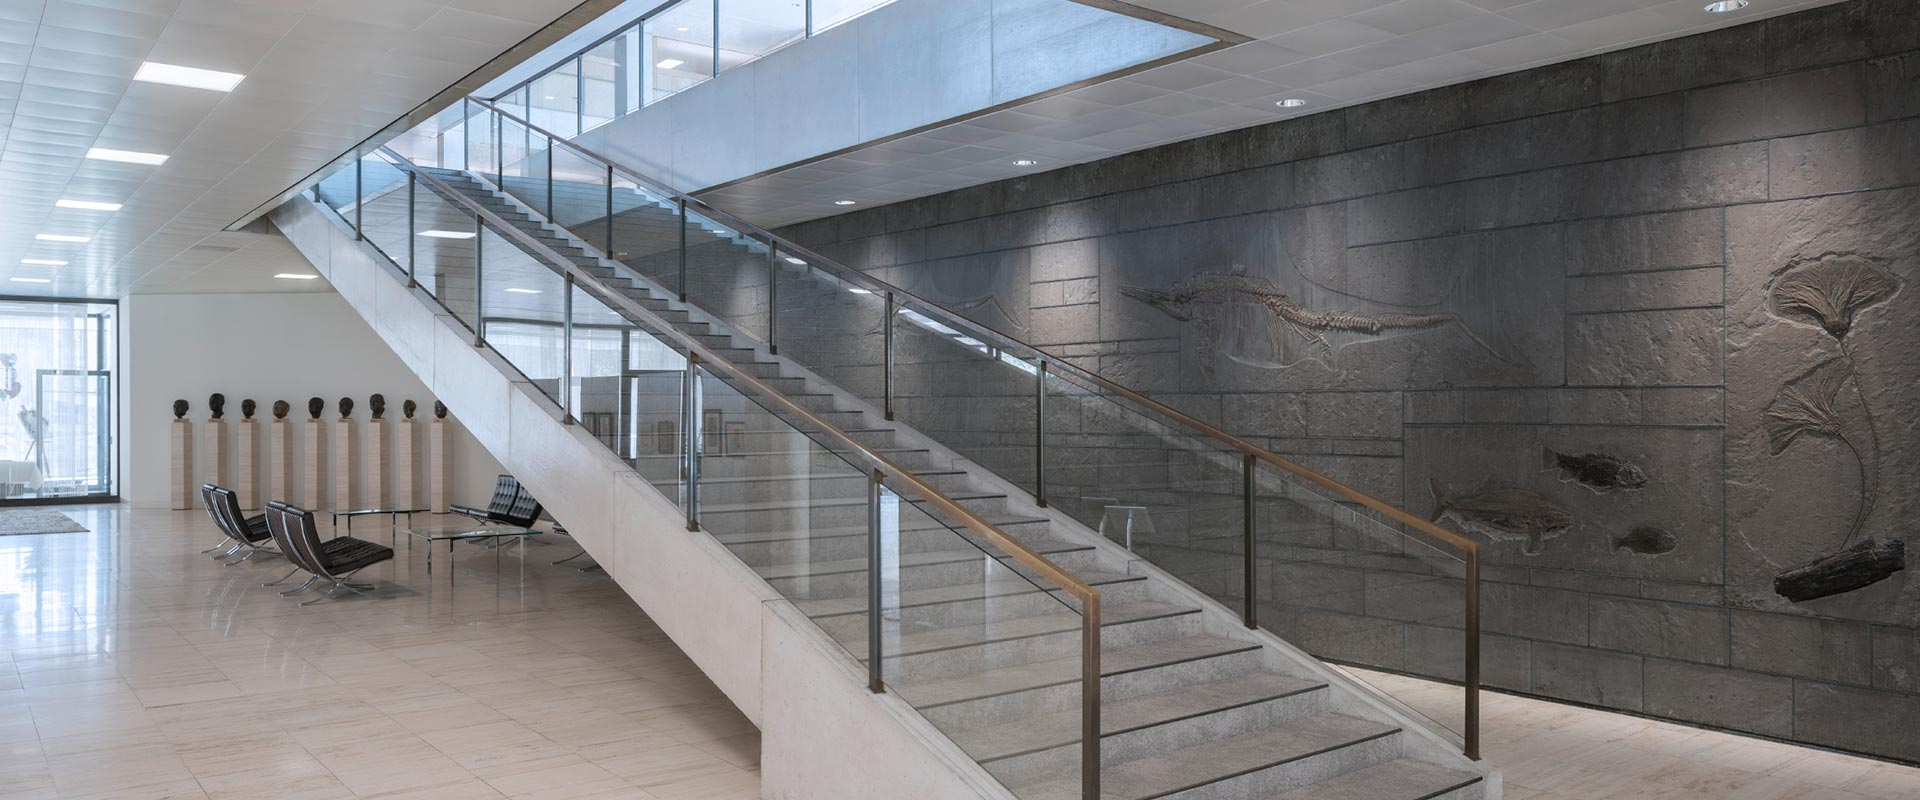 Office Lighting For Corridors And Stairways